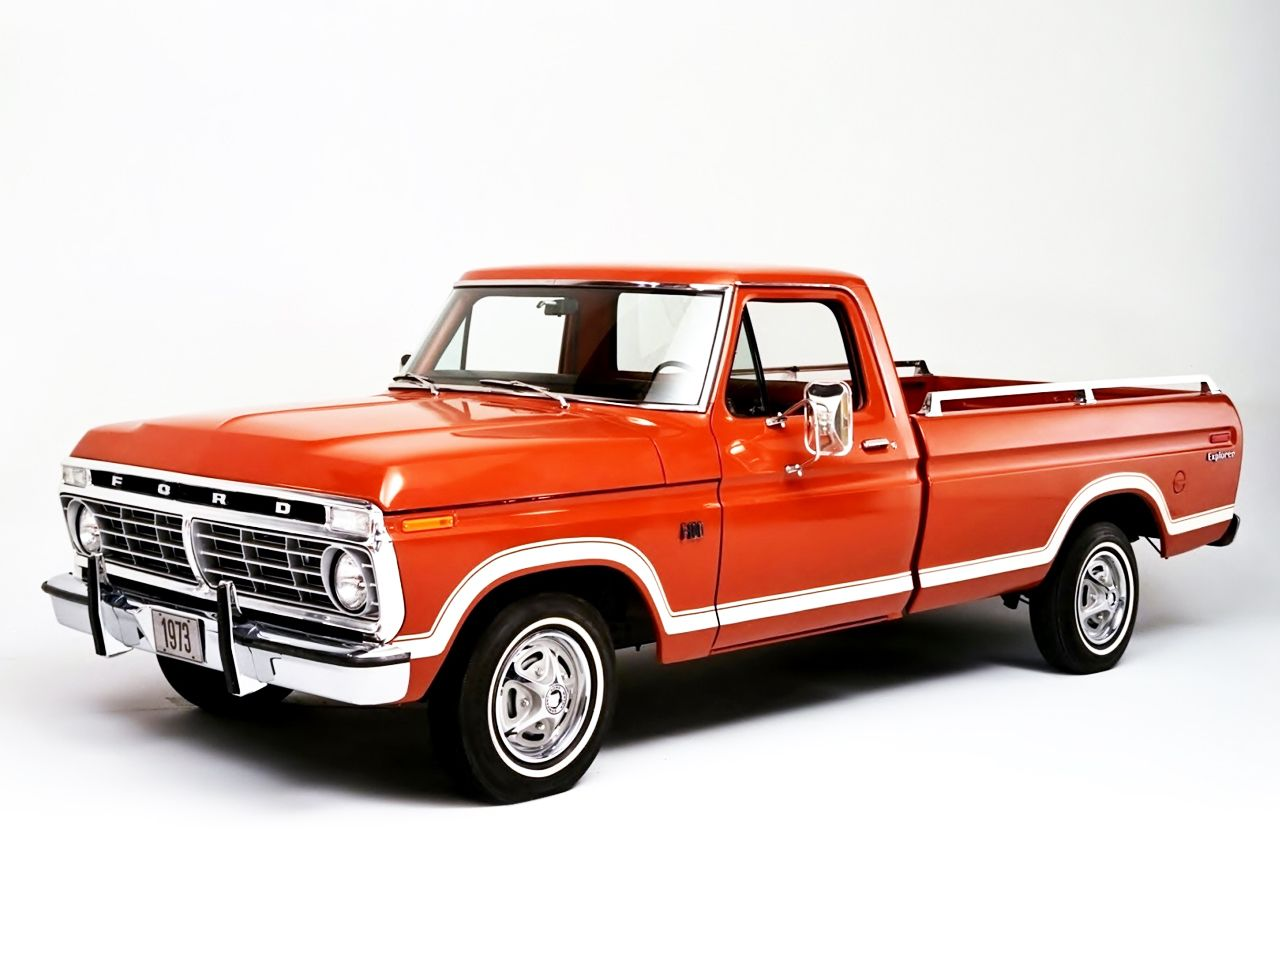 Ford f100 1973 maintenance restoration of old vintage vehicles the material for new